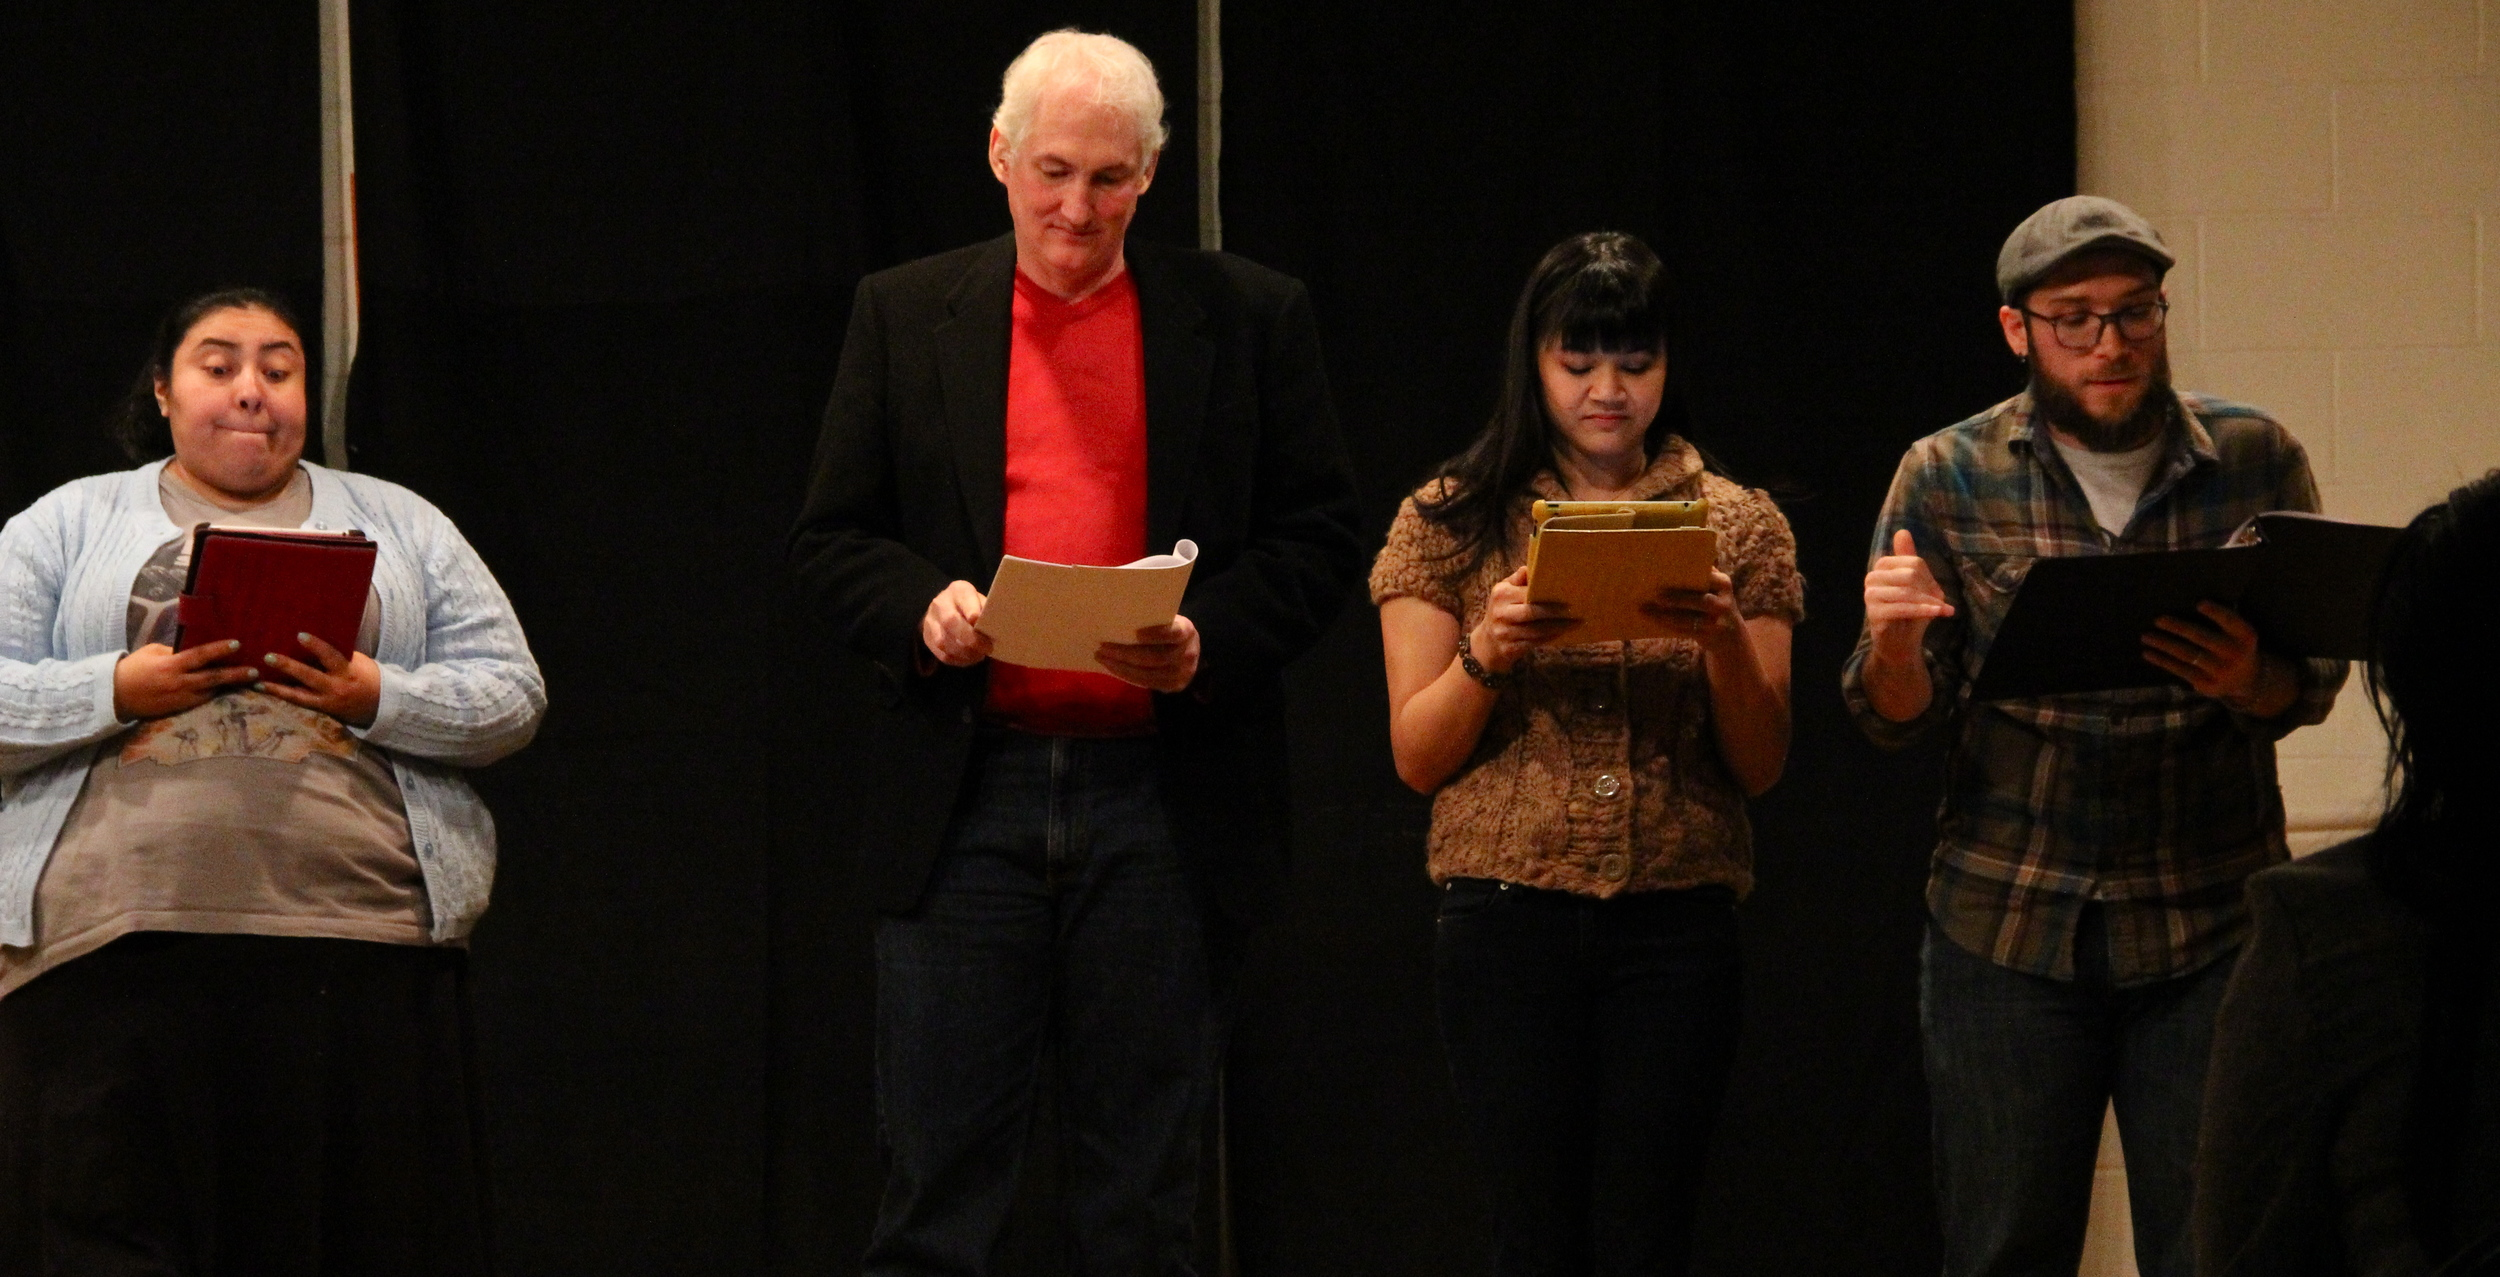 The crew of Denton Performance Lab reads a humorous piece about meeting a significant other's family.